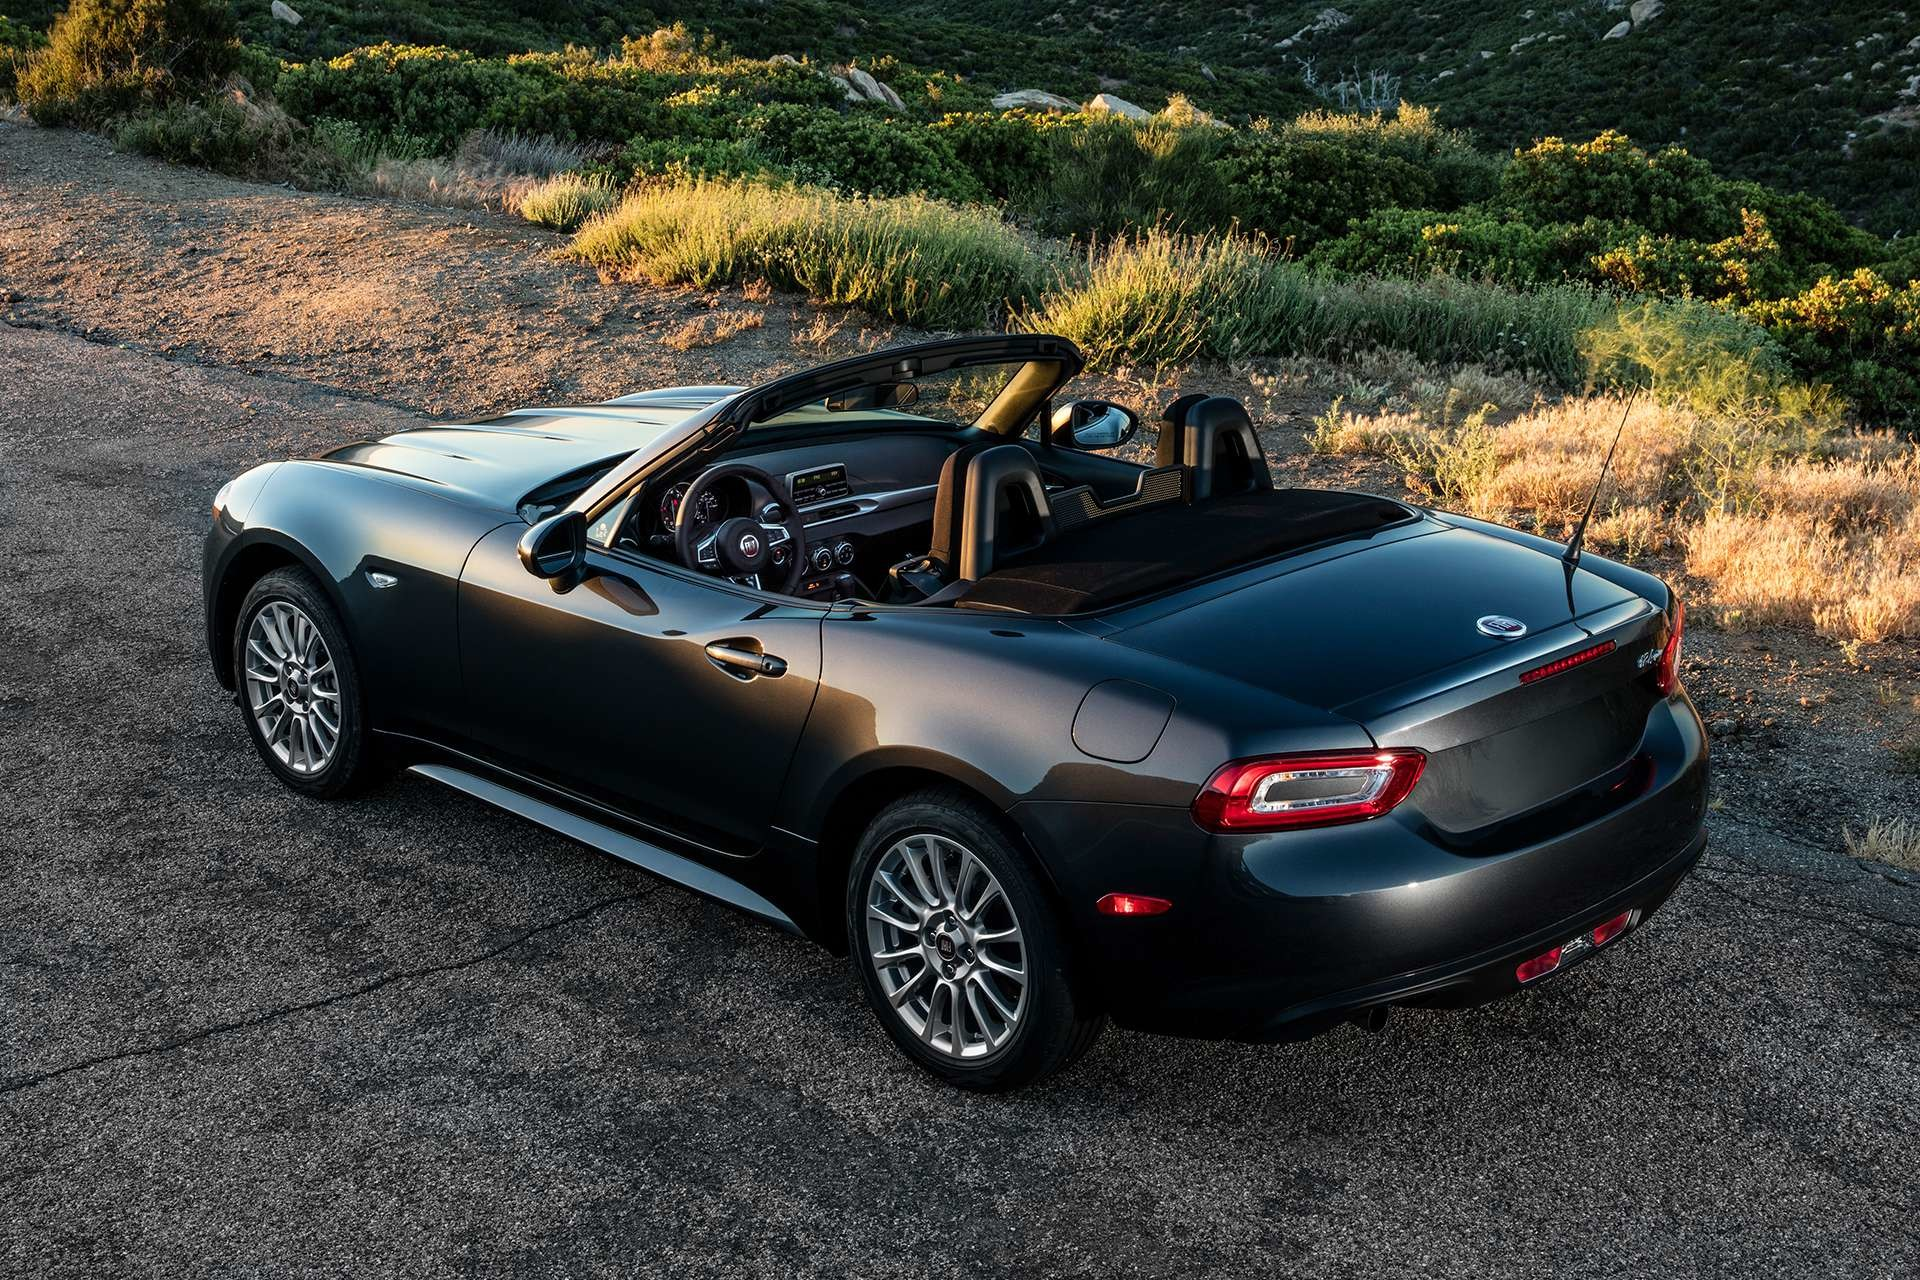 2018 Fiat 124 Spider Roadster gallery exterior picture perfect